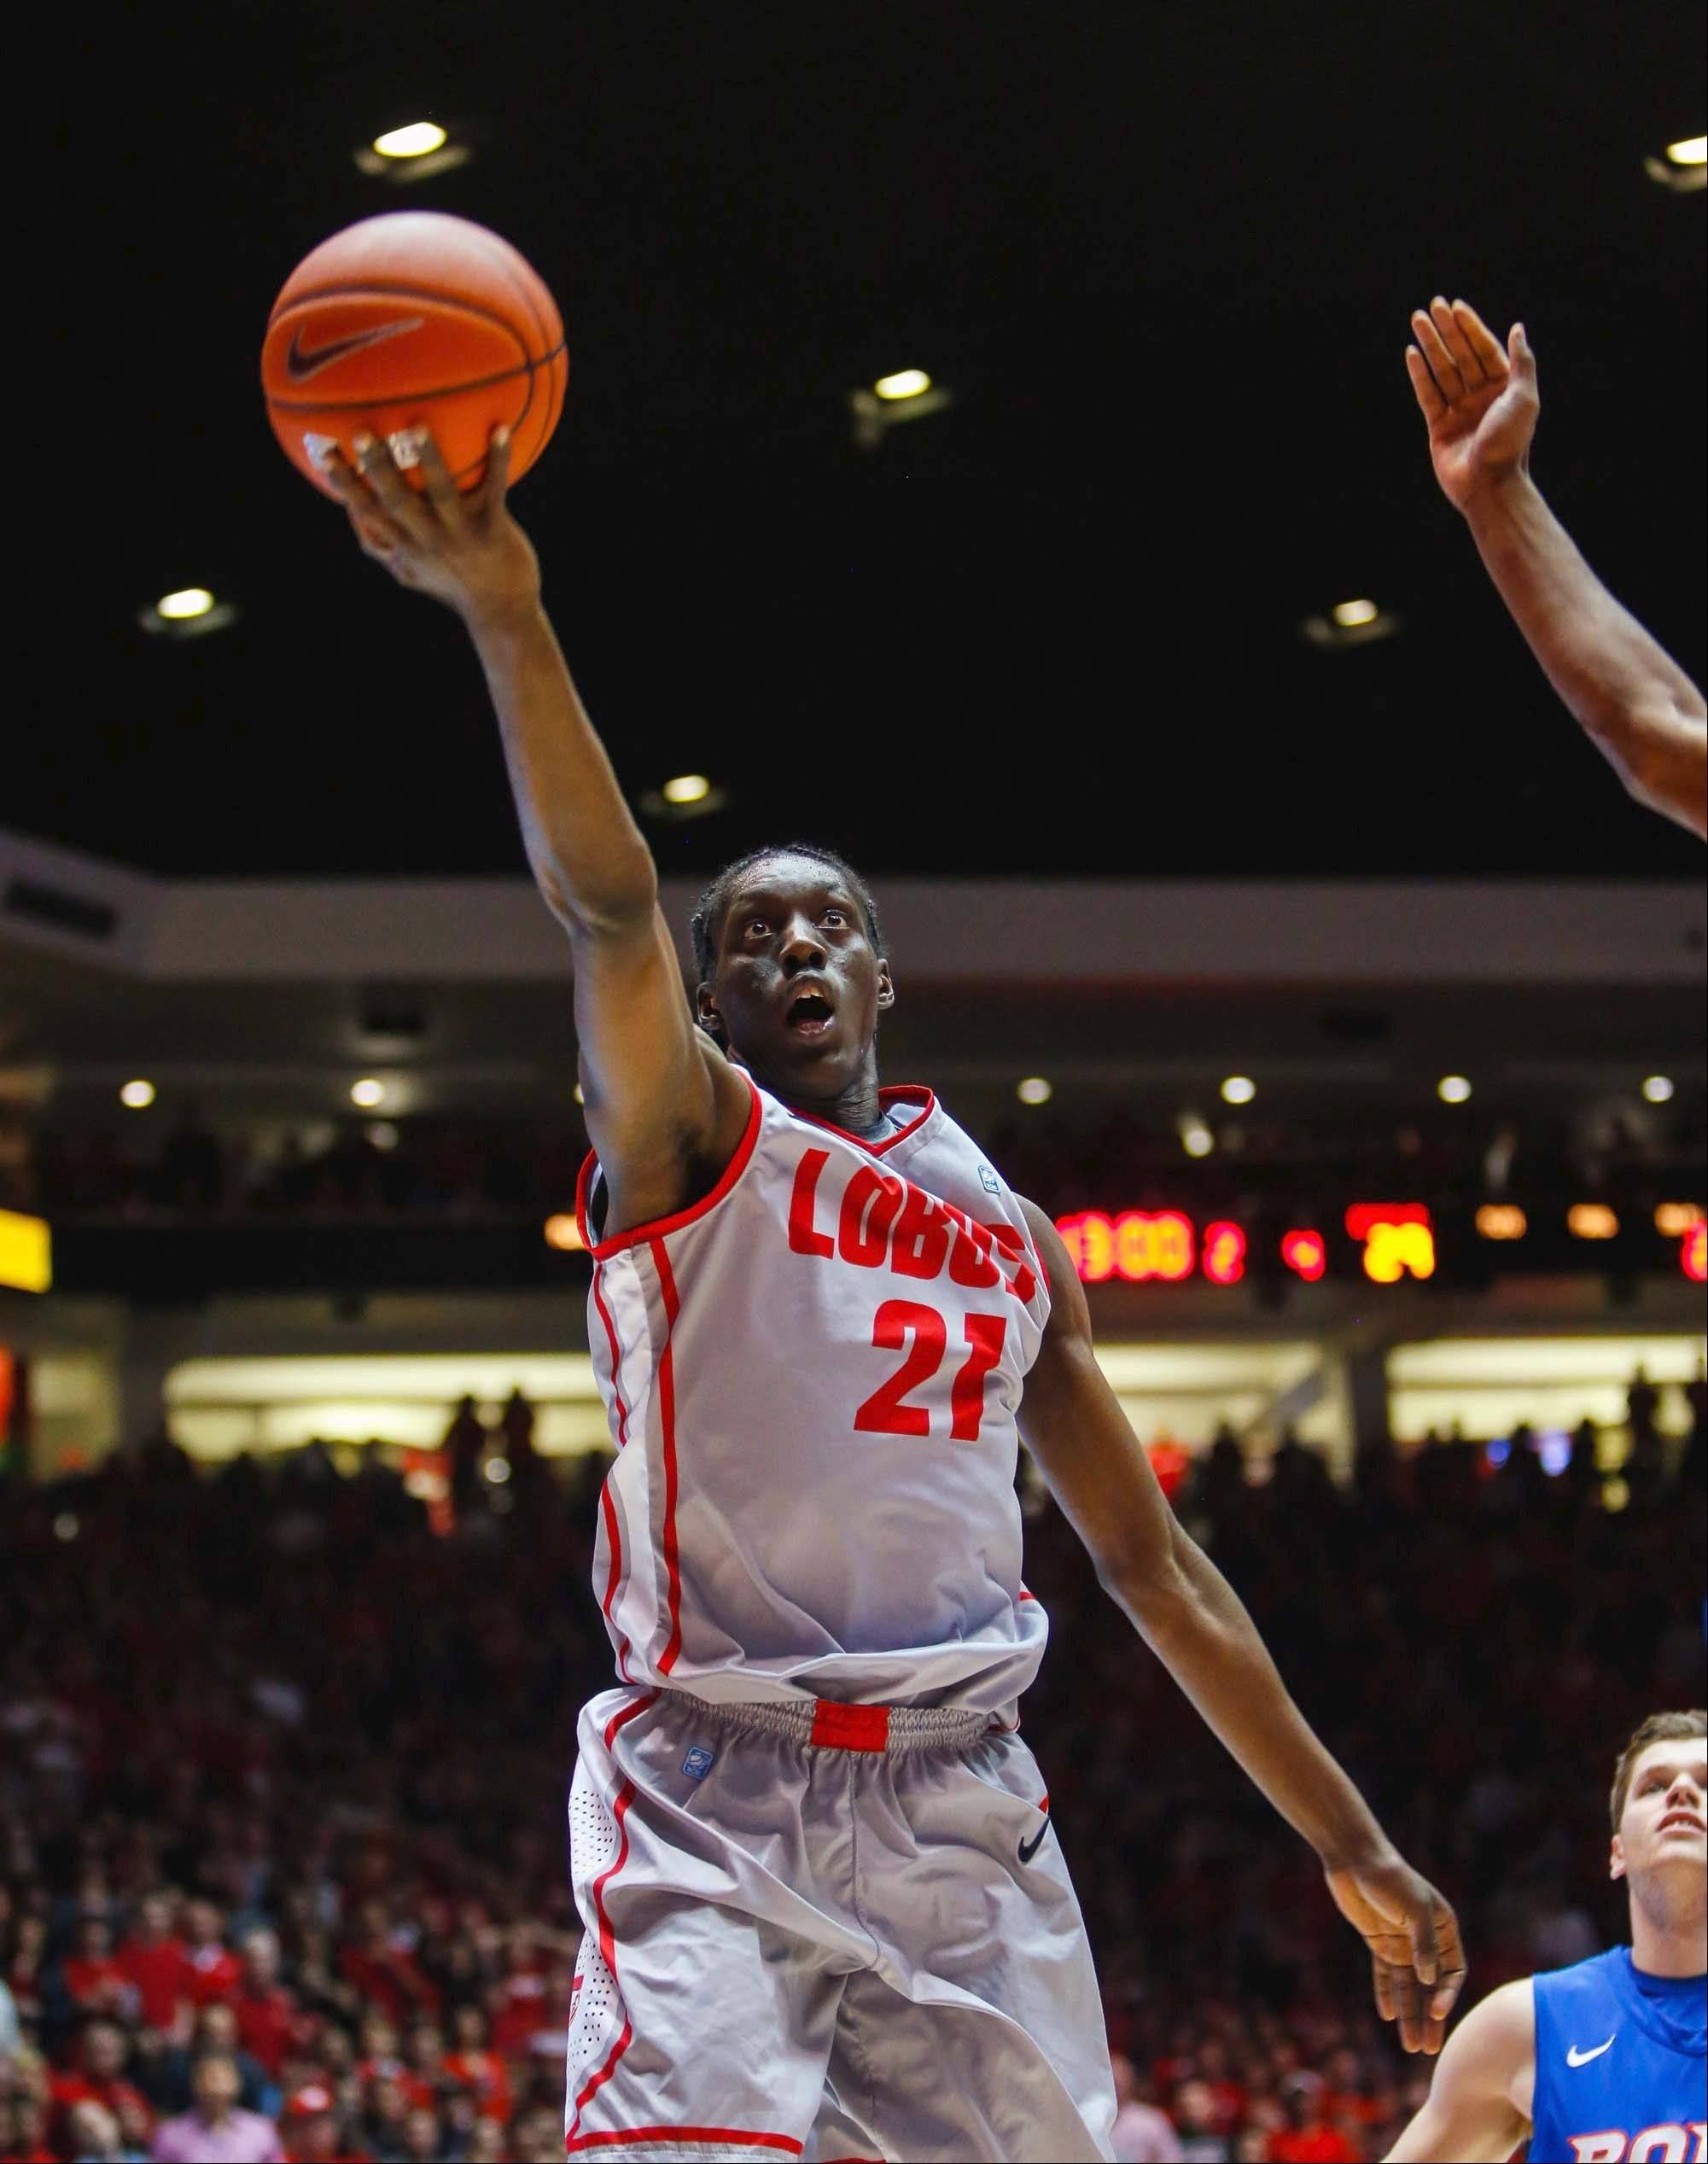 New Mexico's Tony Snell goes for a layup against Boise State in the second half of an NCAA college basketball game Saturday, Feb. 16, 2013, at the Pit in Albuquerque, N.M. New Mexico won 60-50.